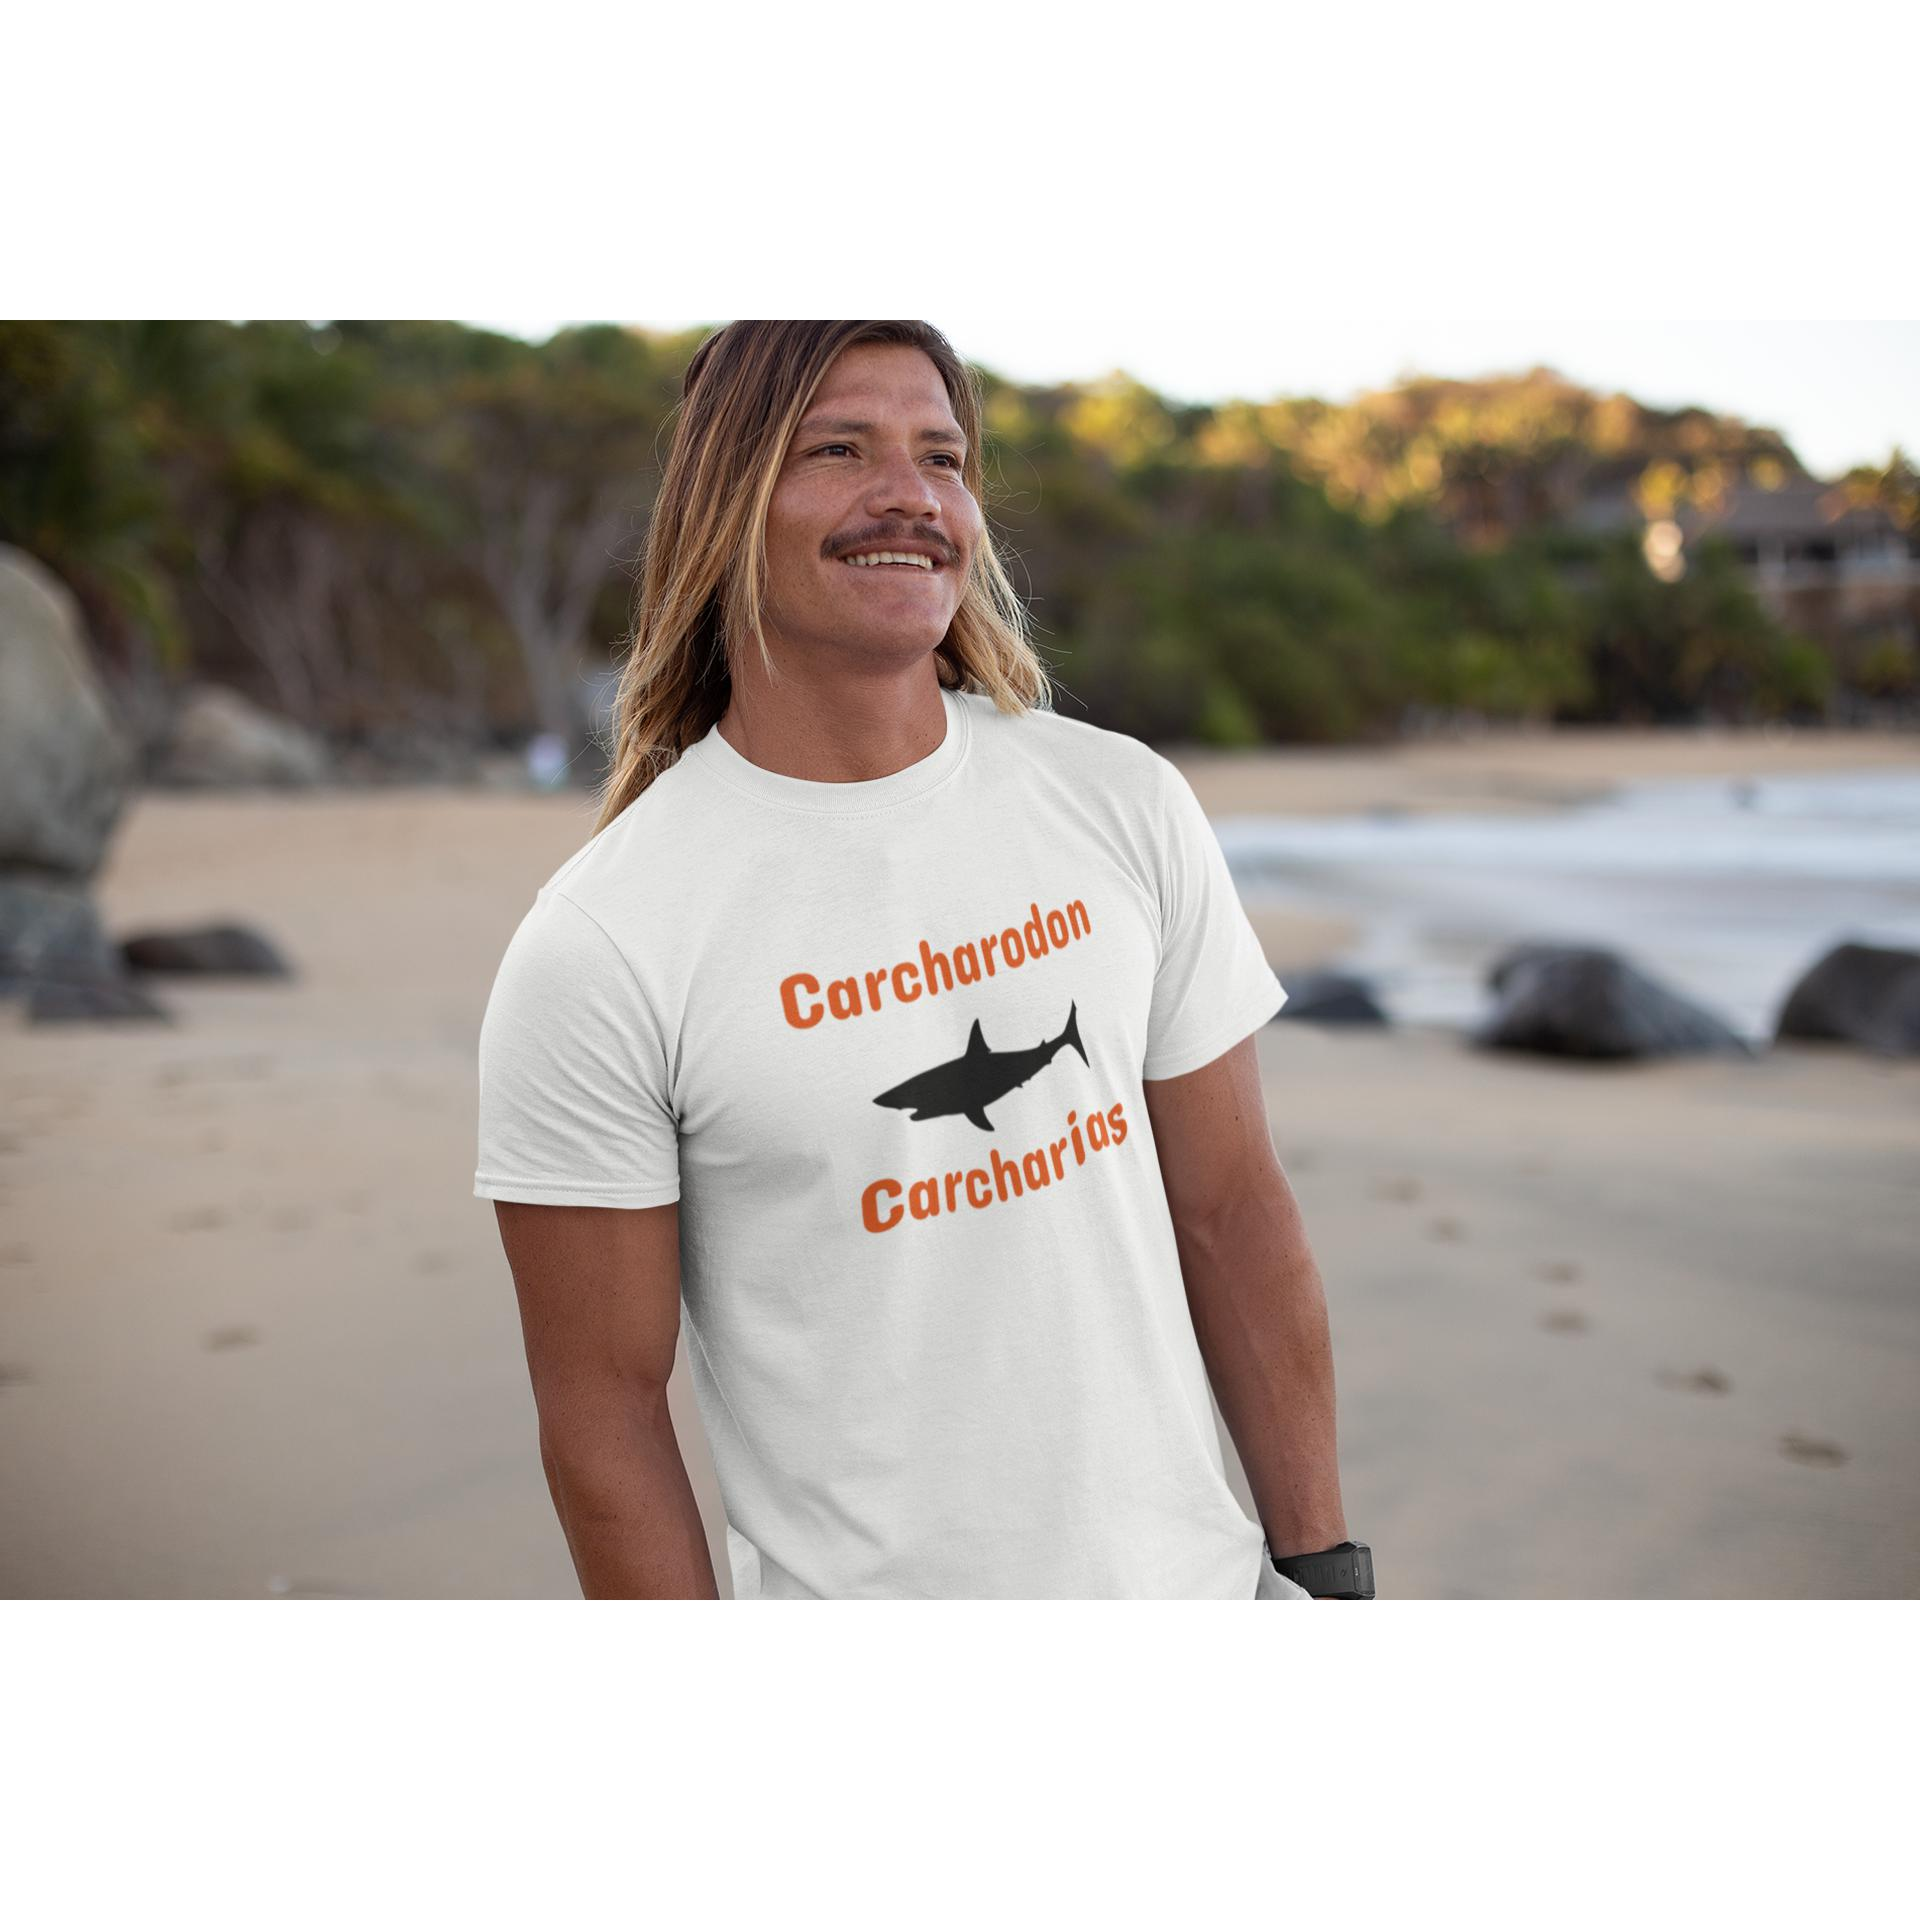 Great White - Carcharodon carcharias, AS Organic Tee-Men - Apparel - Shirts - T-Shirts-Tiny White Lies